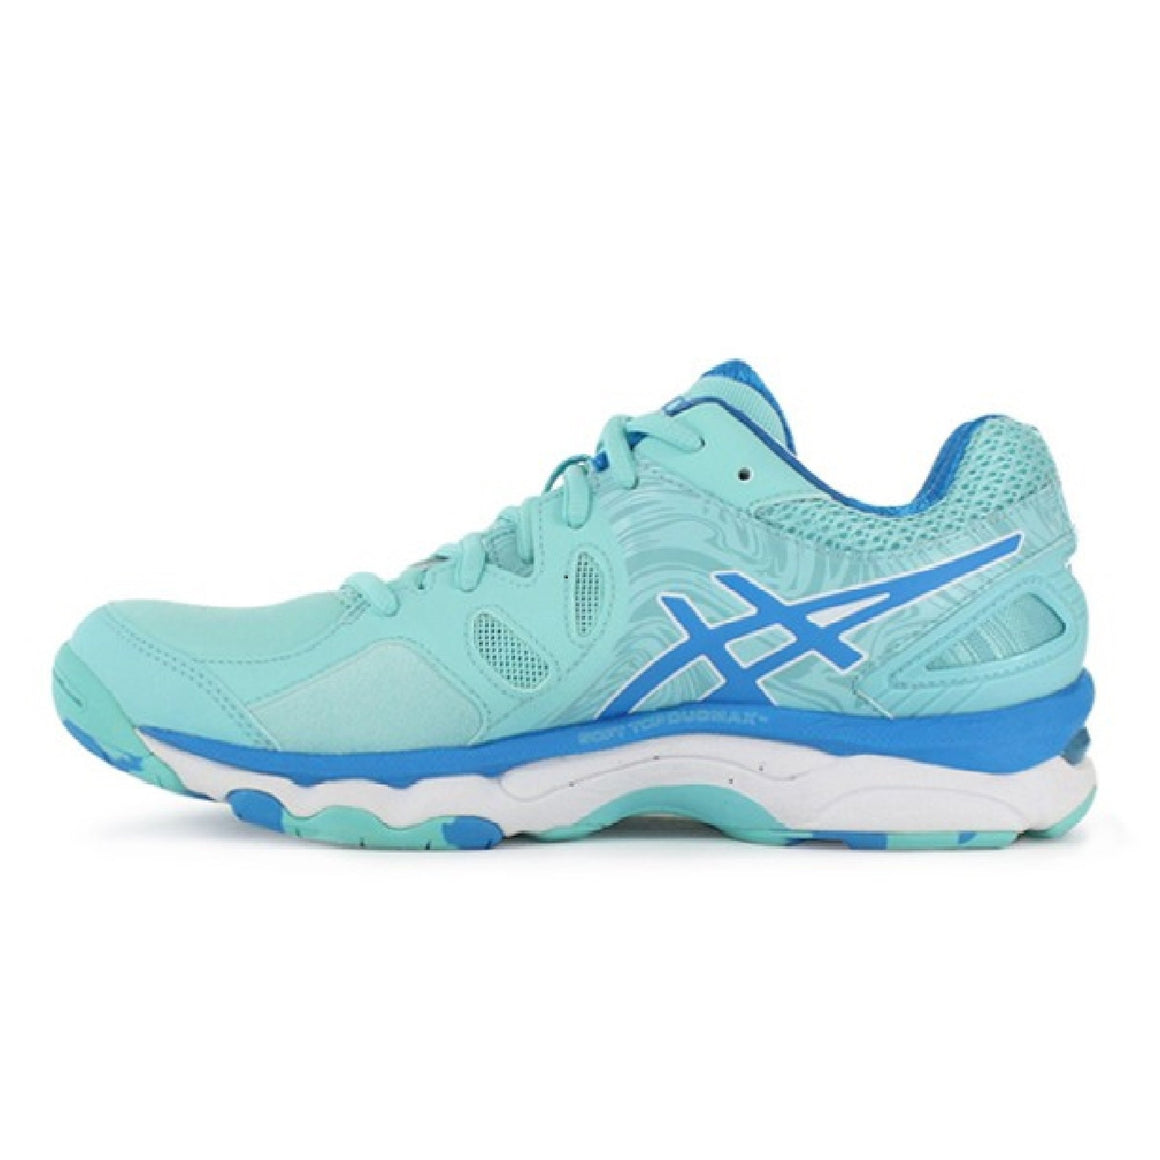 Ladies Asics Gel Netburner Super 7 Aqua